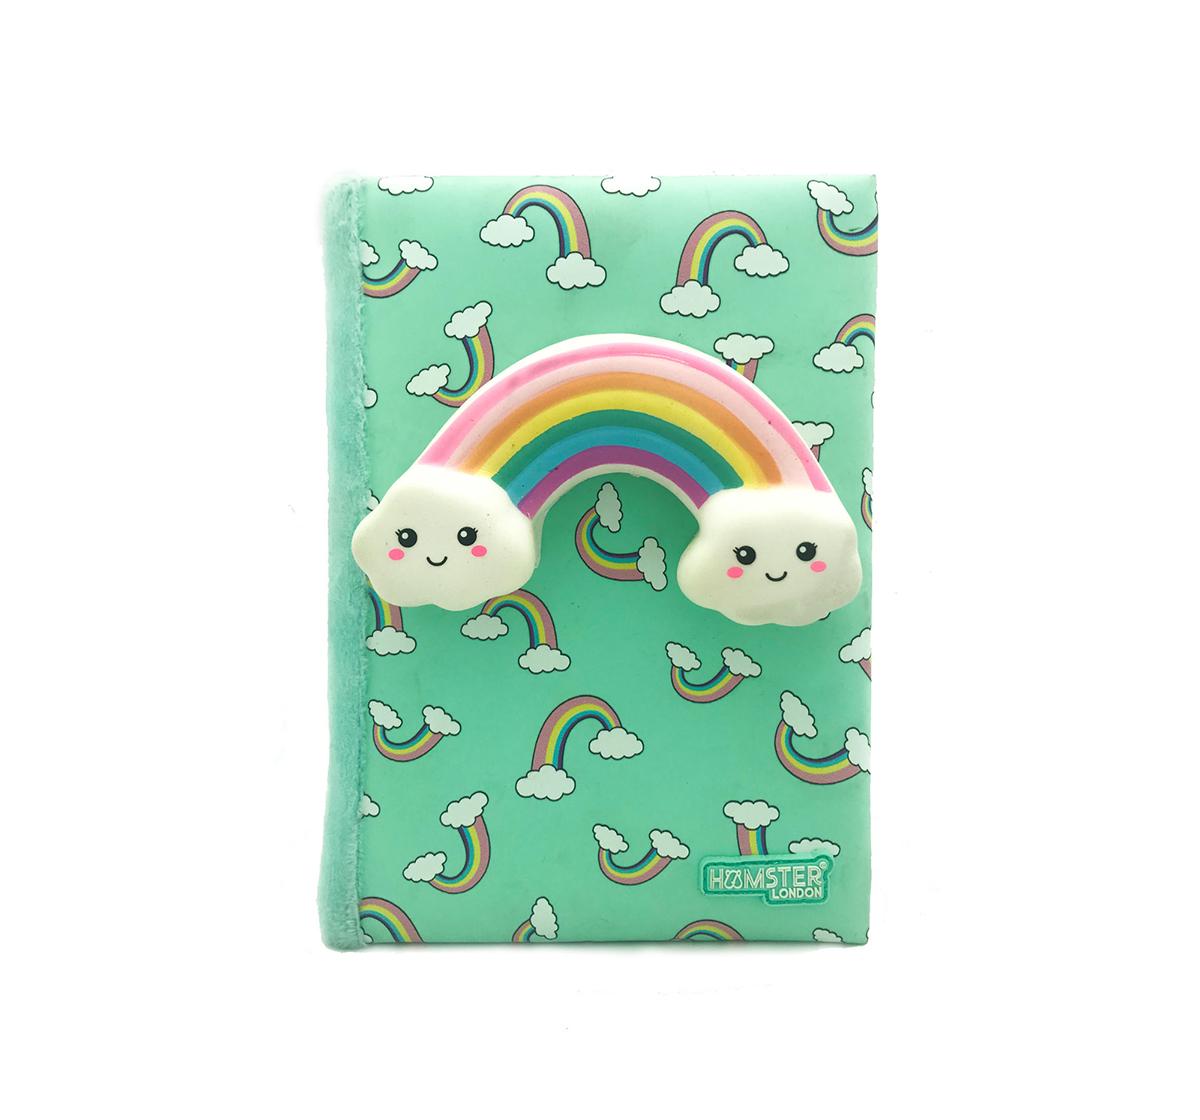 Hamster London   Hamster London Rainbow Diary for Kids age 3Y+ (Green)